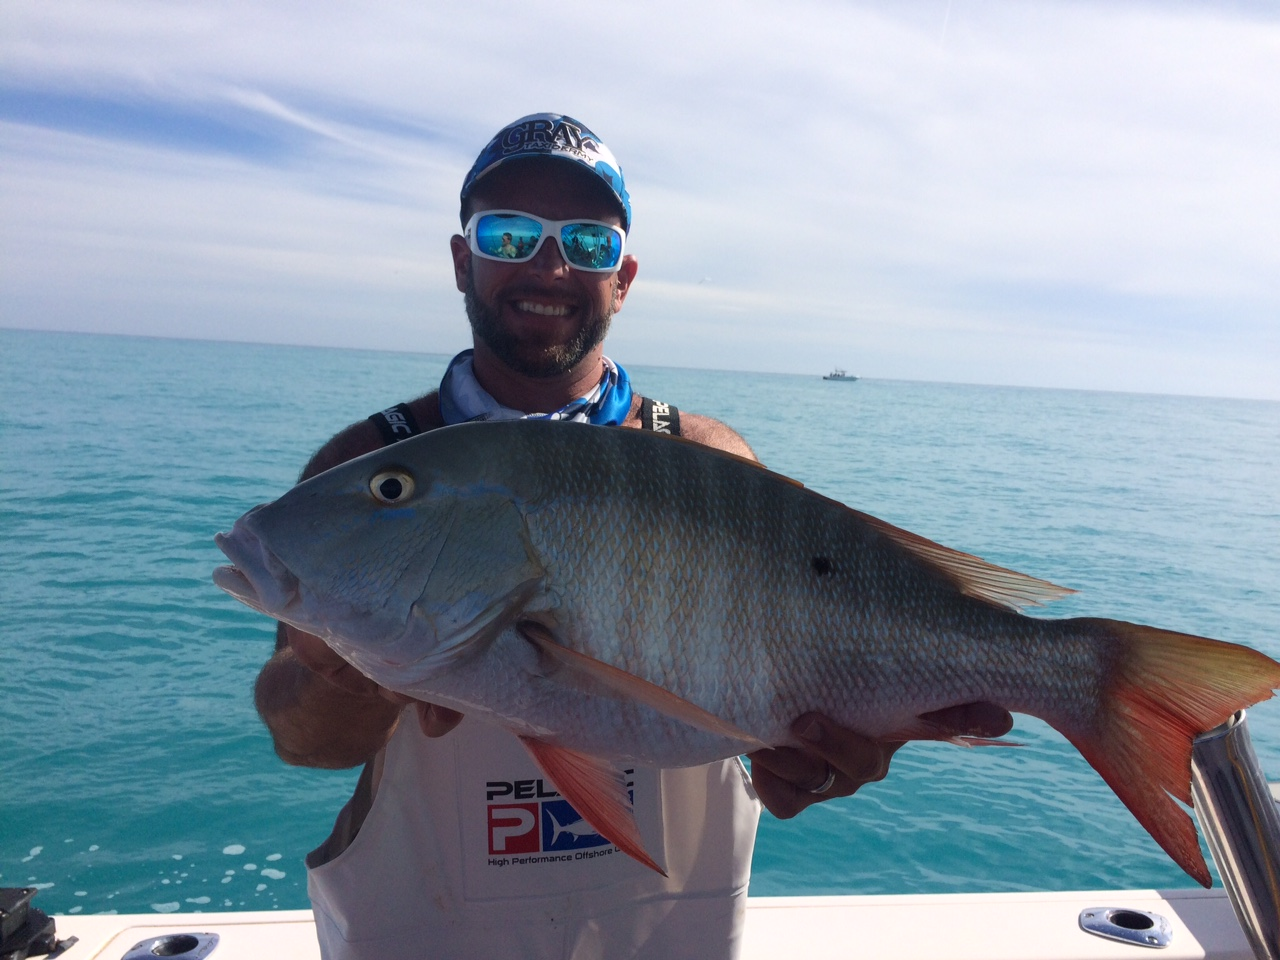 We got this fat mutton snapper on a reef and wreck charter off Marathon in the Fl Keys.